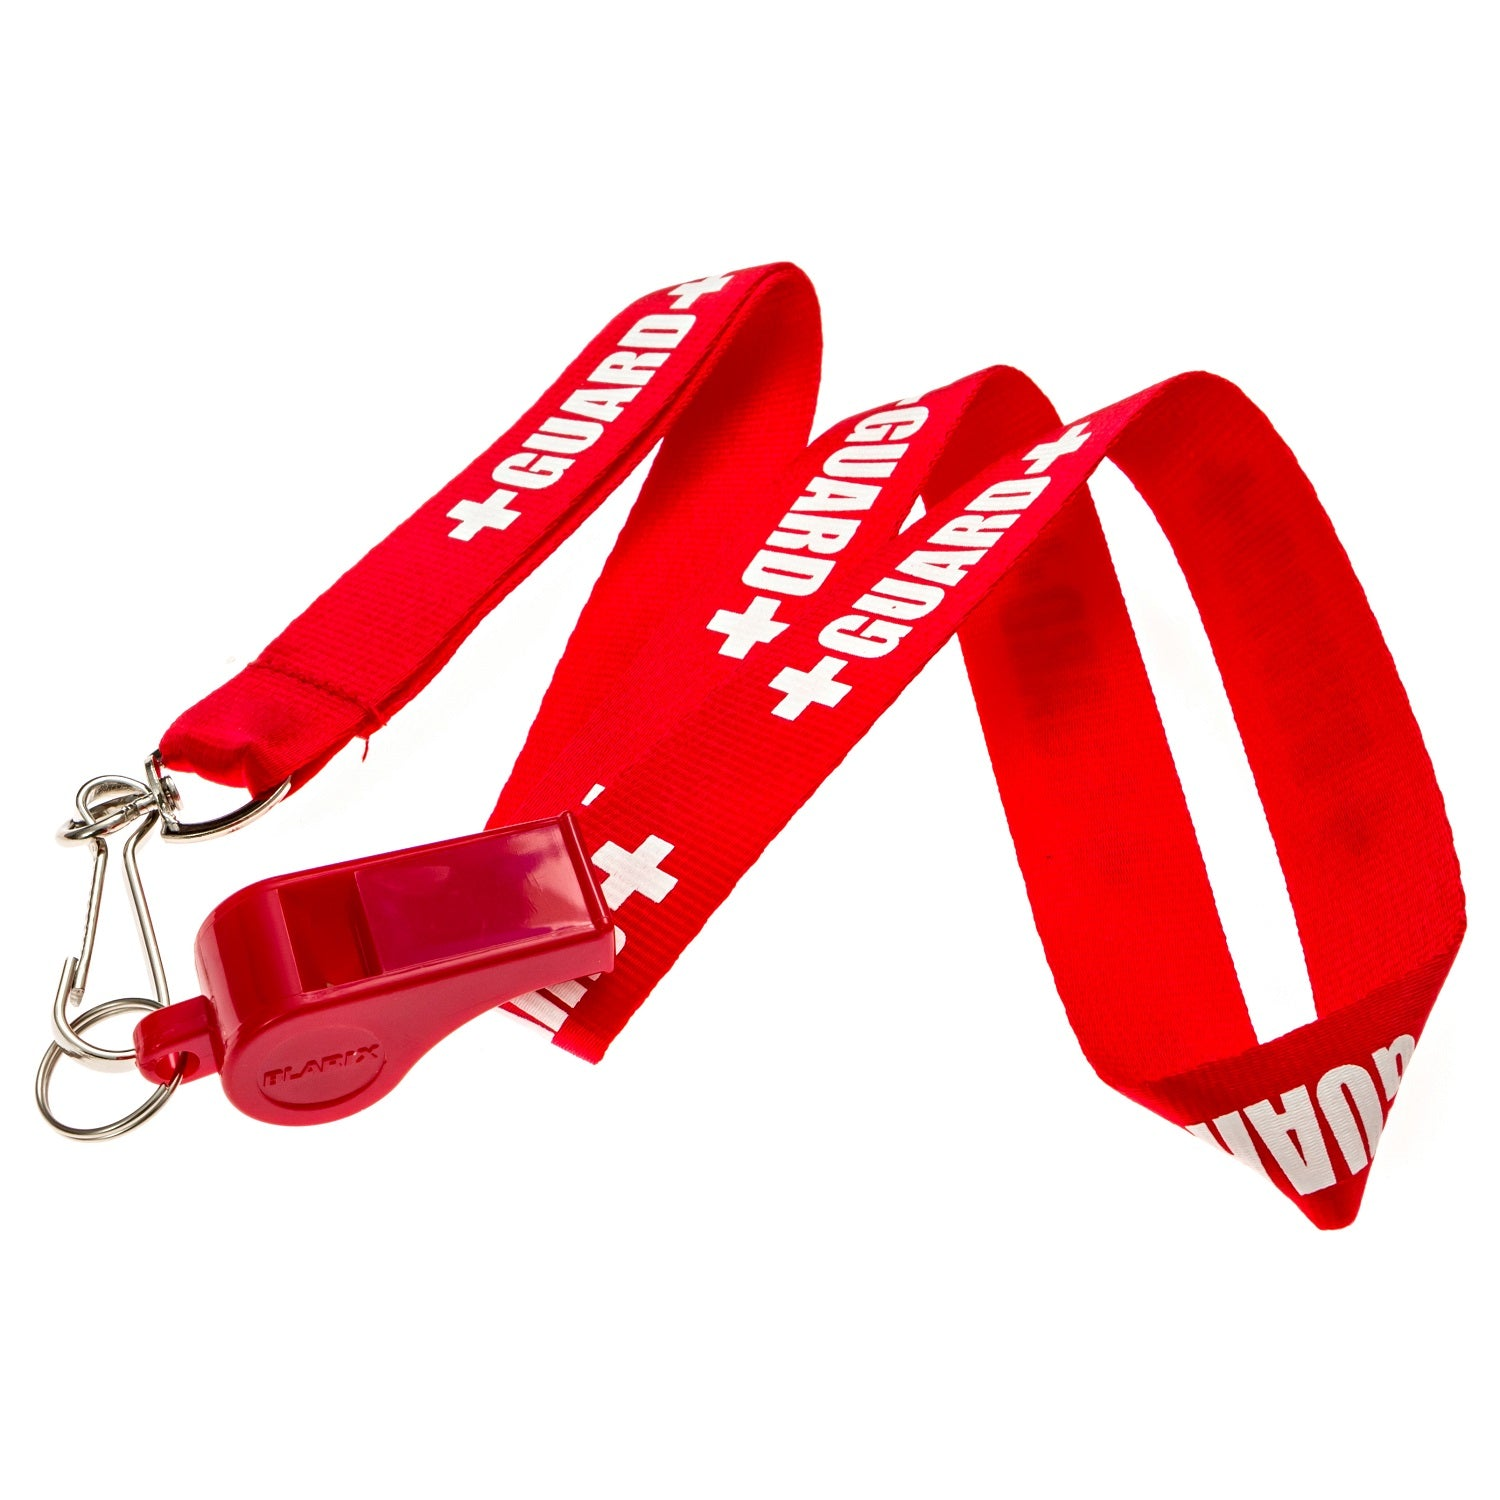 Lifeguard Pea Whistle and Printed Lanyard - BLARIX